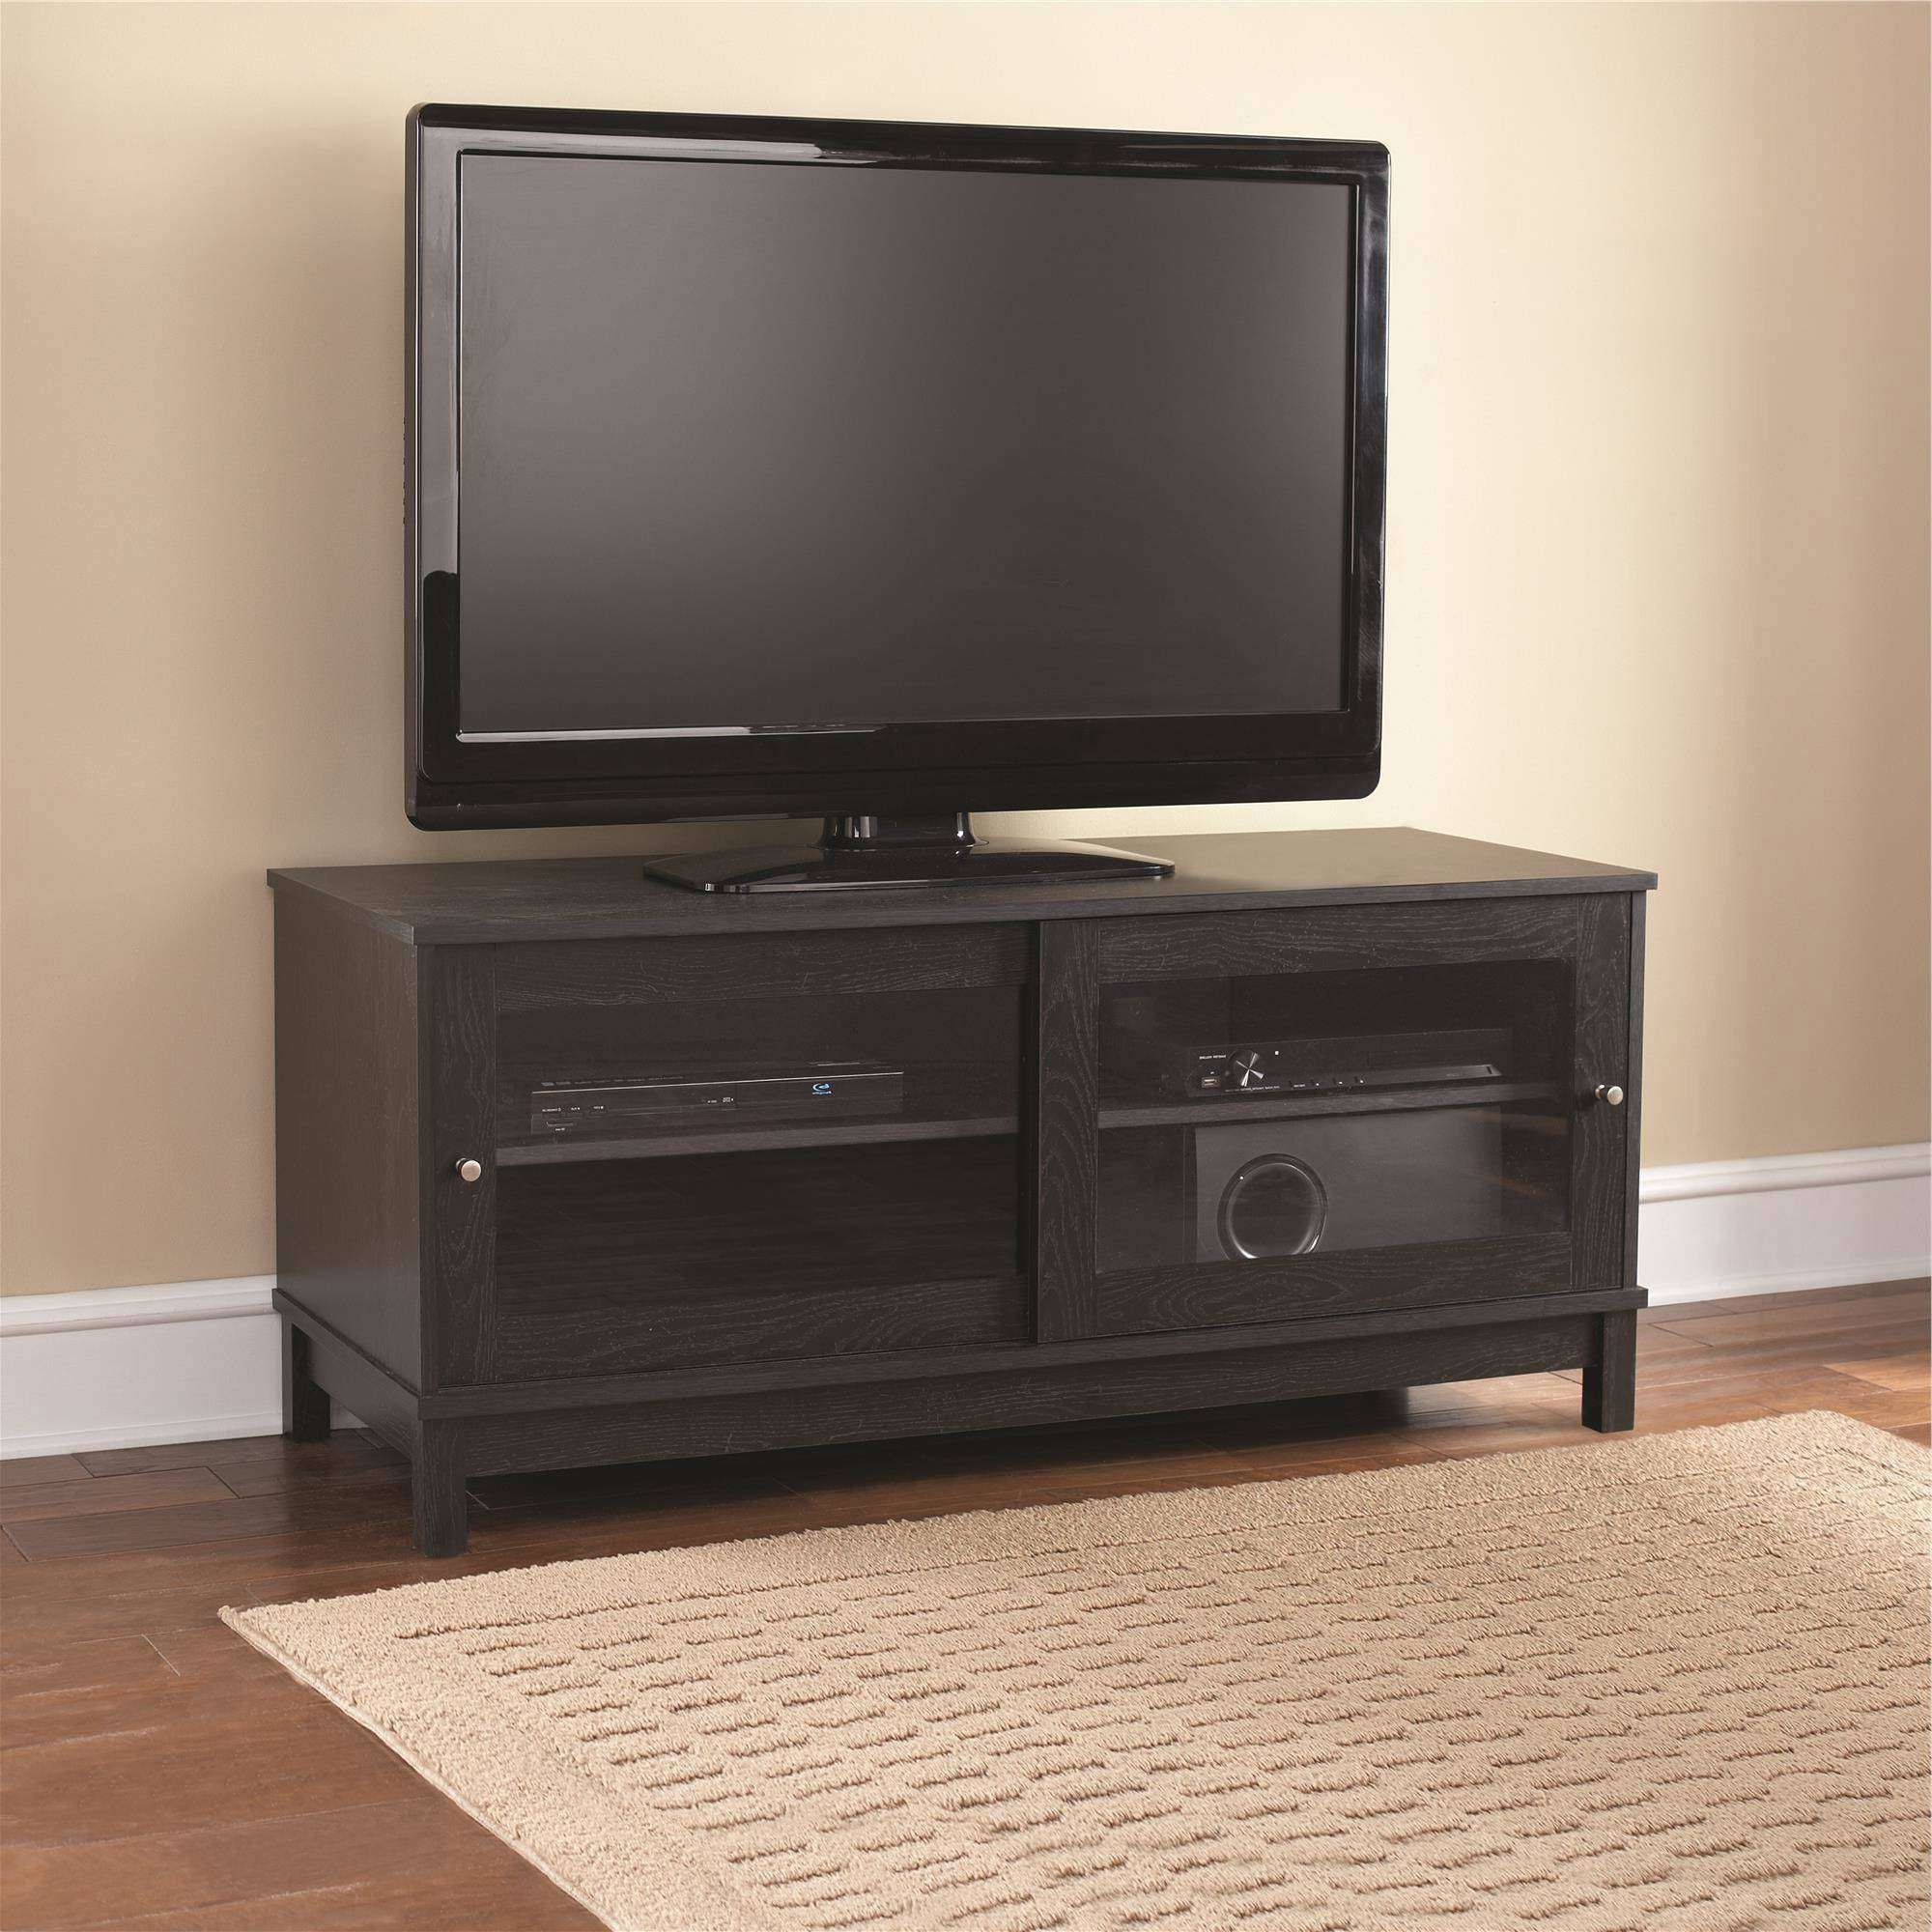 """Mainstays 55"""" Tv Stand With Sliding Glass Doors, Black Ebony Ash In Light Cherry Tv Stands (View 8 of 15)"""